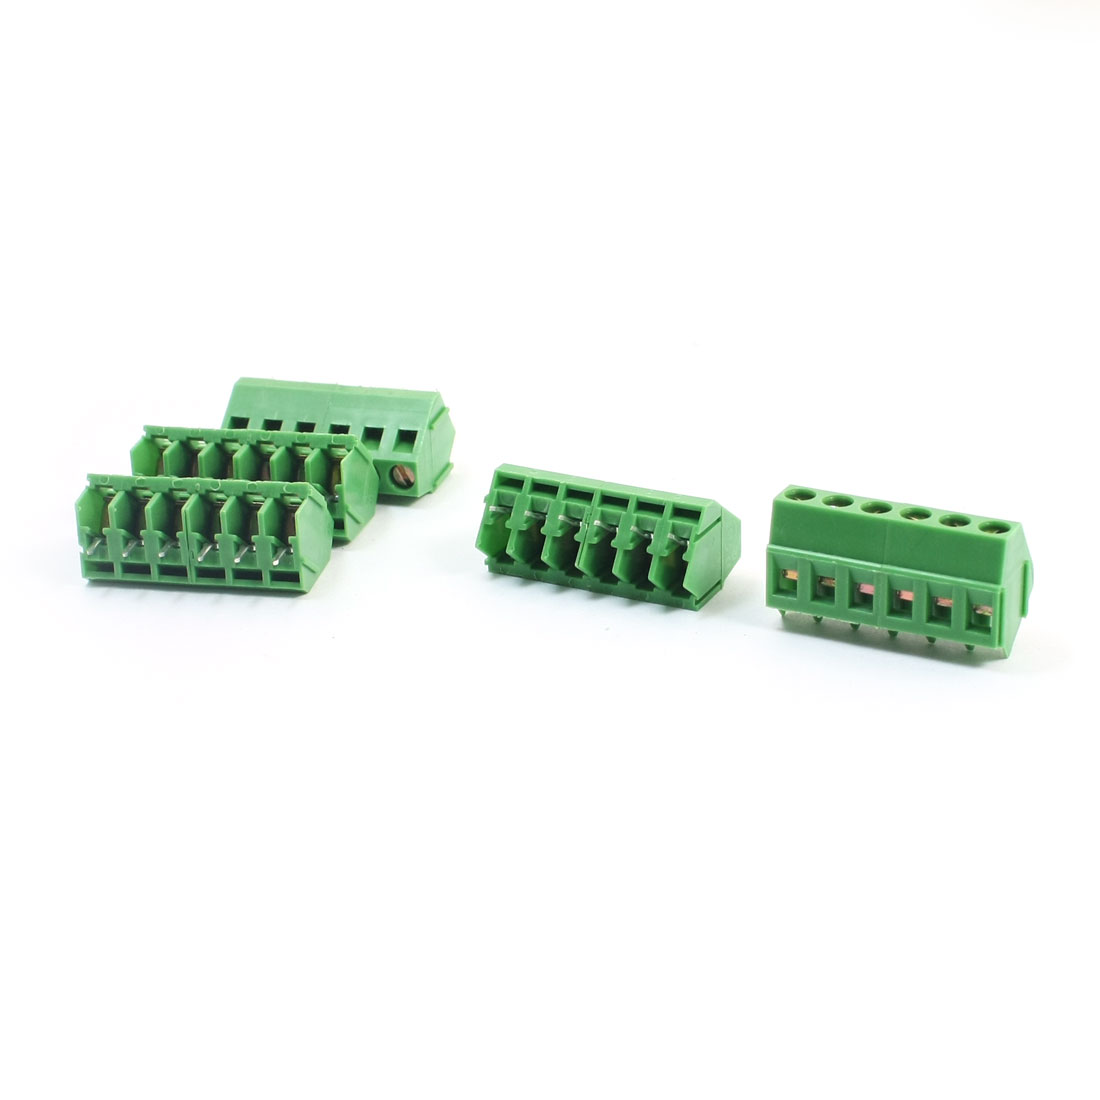 5Pcs 5mm Pitch 6 Pins Plug in Type Through Hole Mounting PCB Screw Terminal Barrier Block Connector